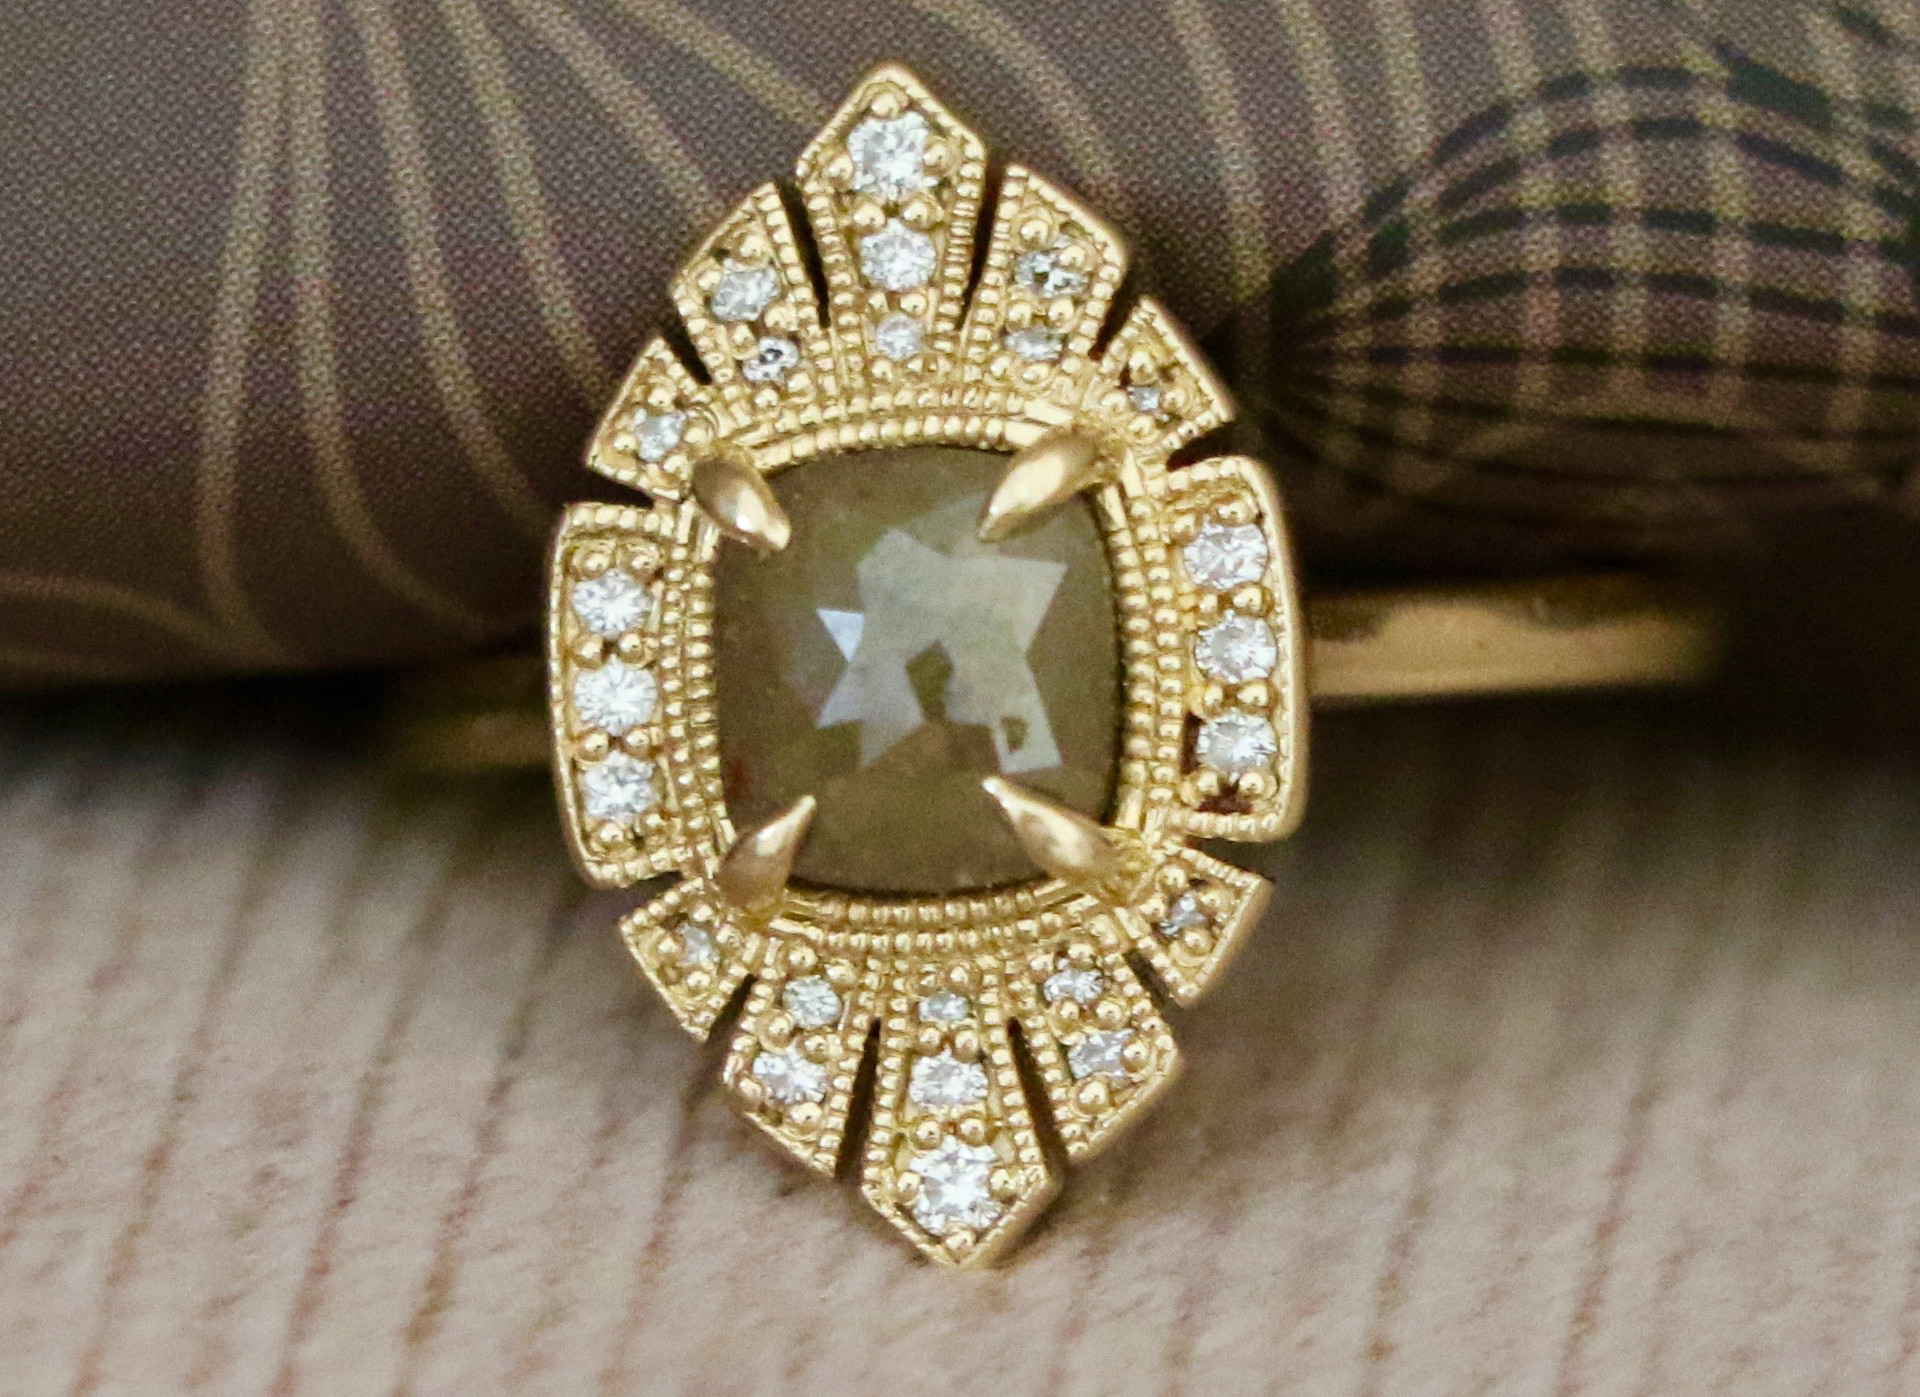 ONE-OF-A-KIND DIAMOND RING